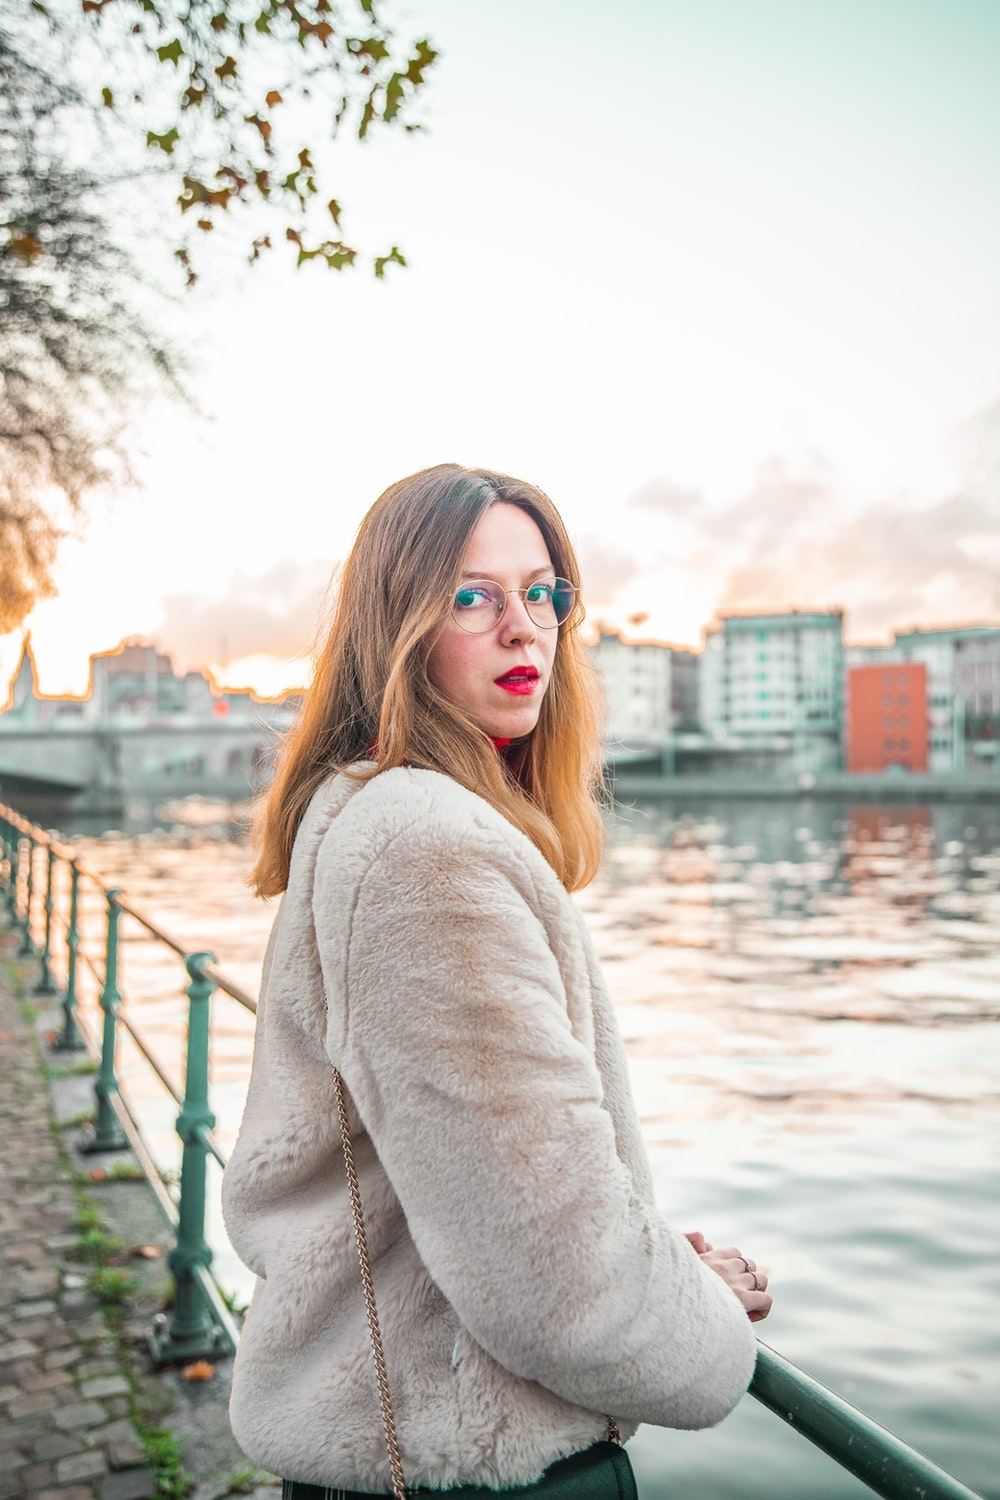 woman in white sweater standing near body of water during daytime